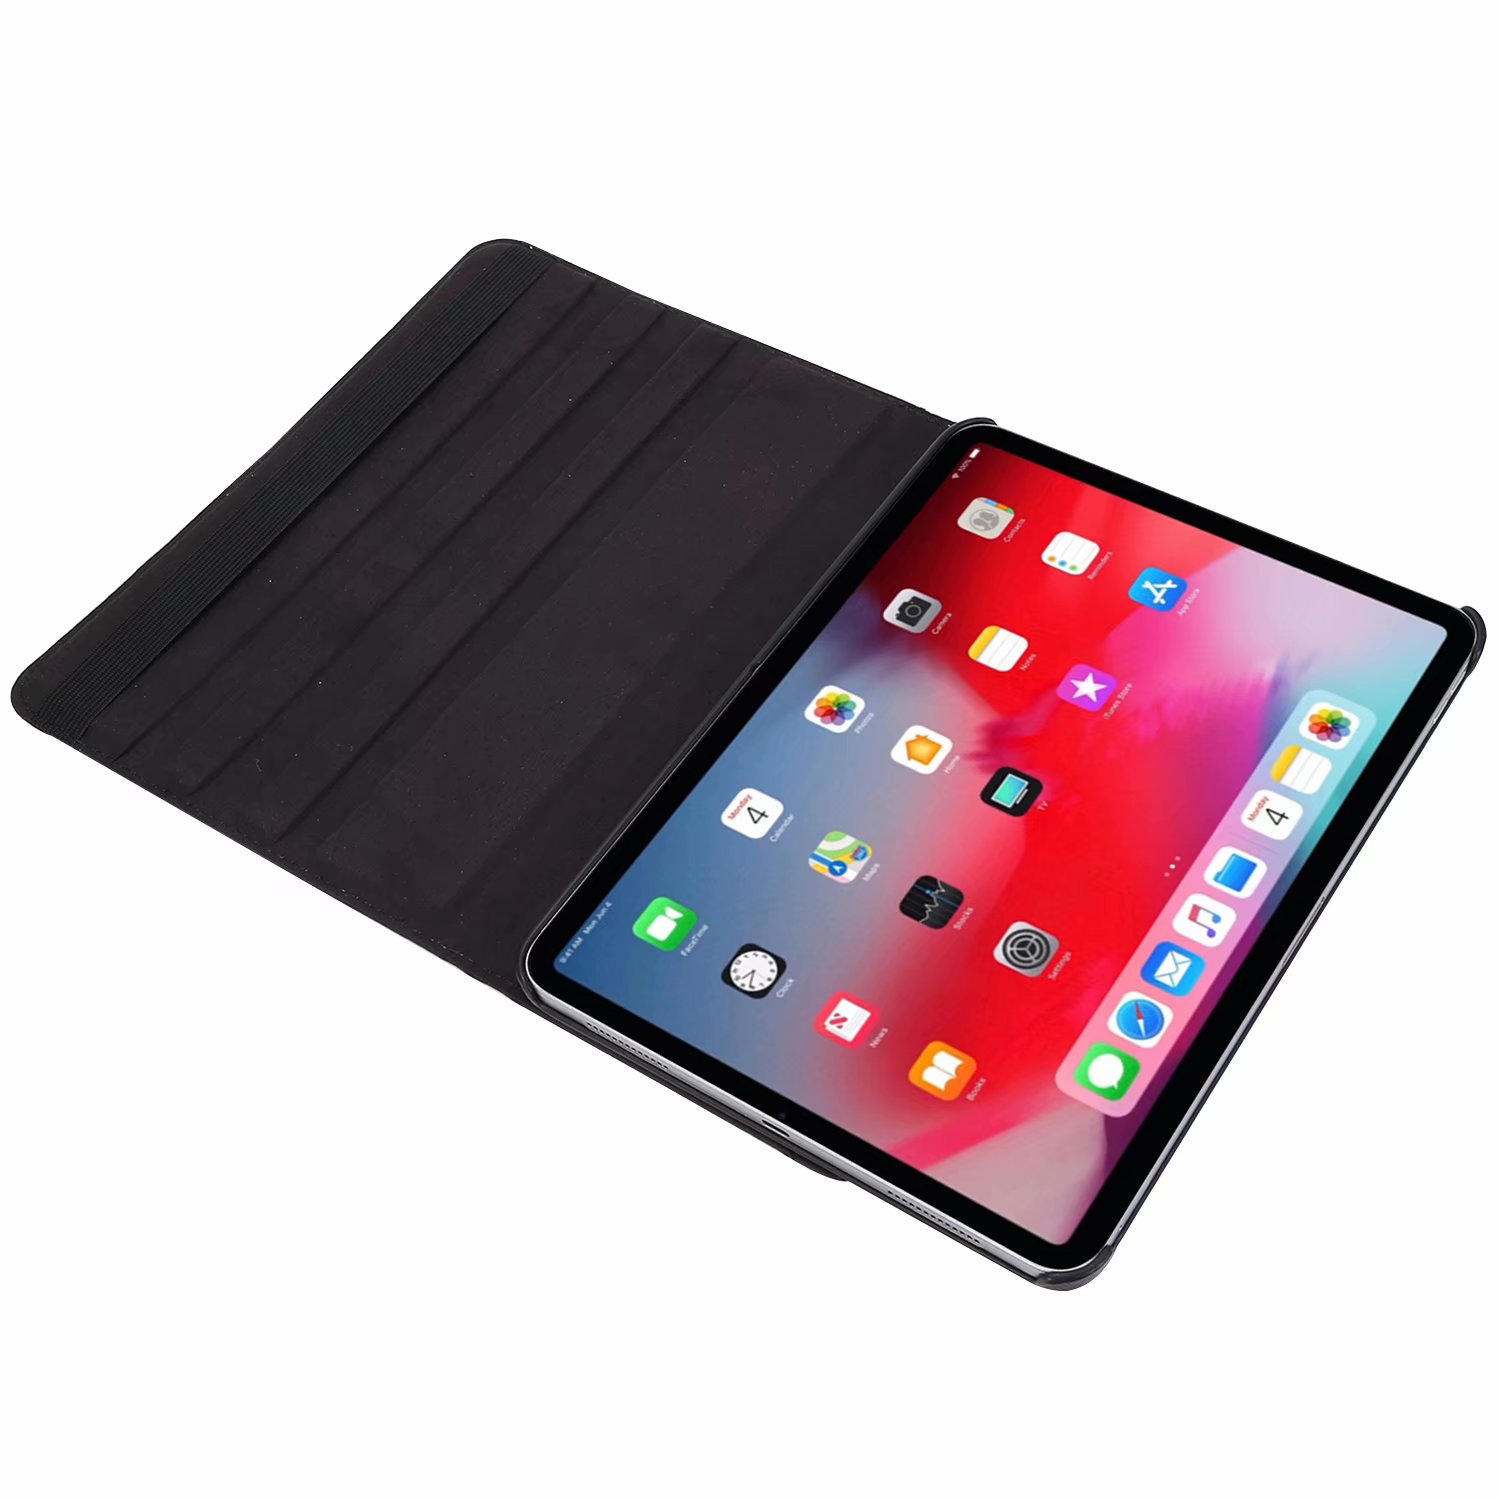 Cover A2013 A2230 Degree Pro iPad A1934 360 for A2068 2021/2020/2018 A1980 11 Case A2228